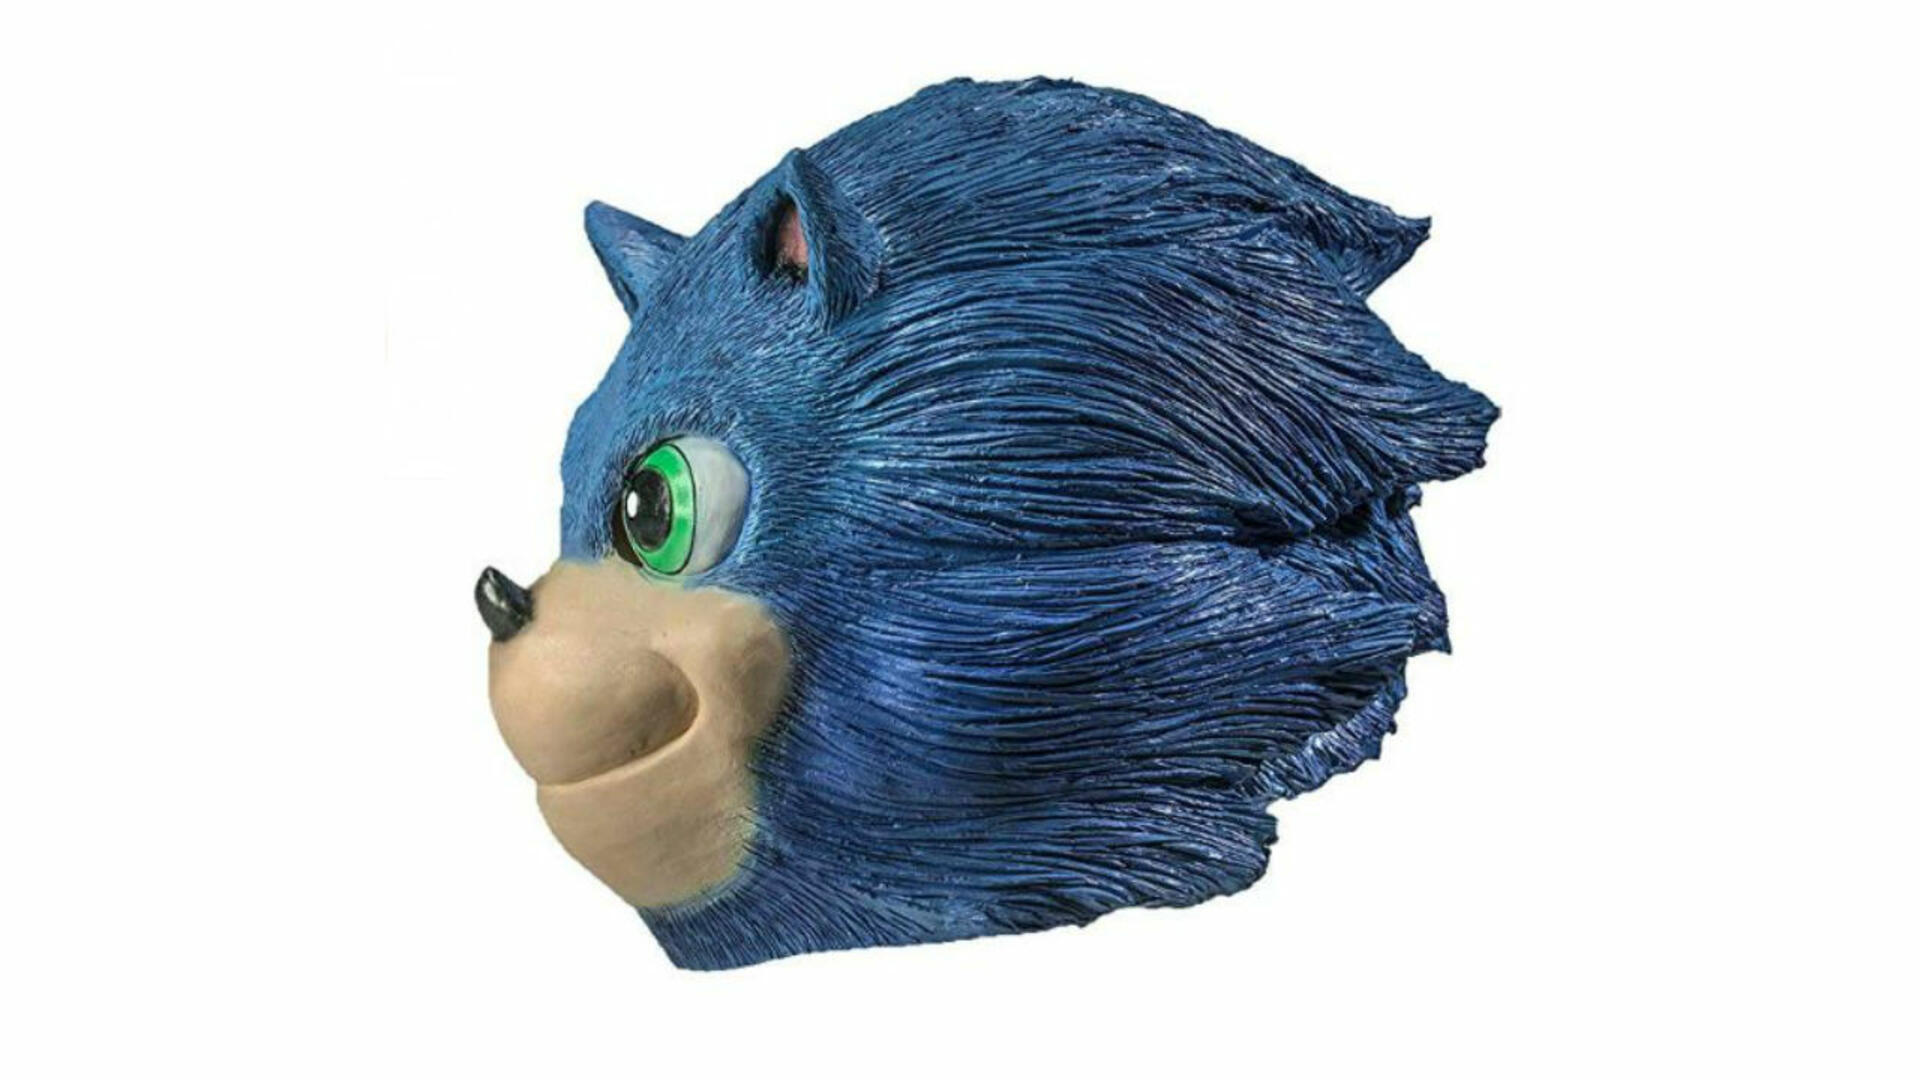 This Year's Scariest Halloween Costume? Movie Sonic